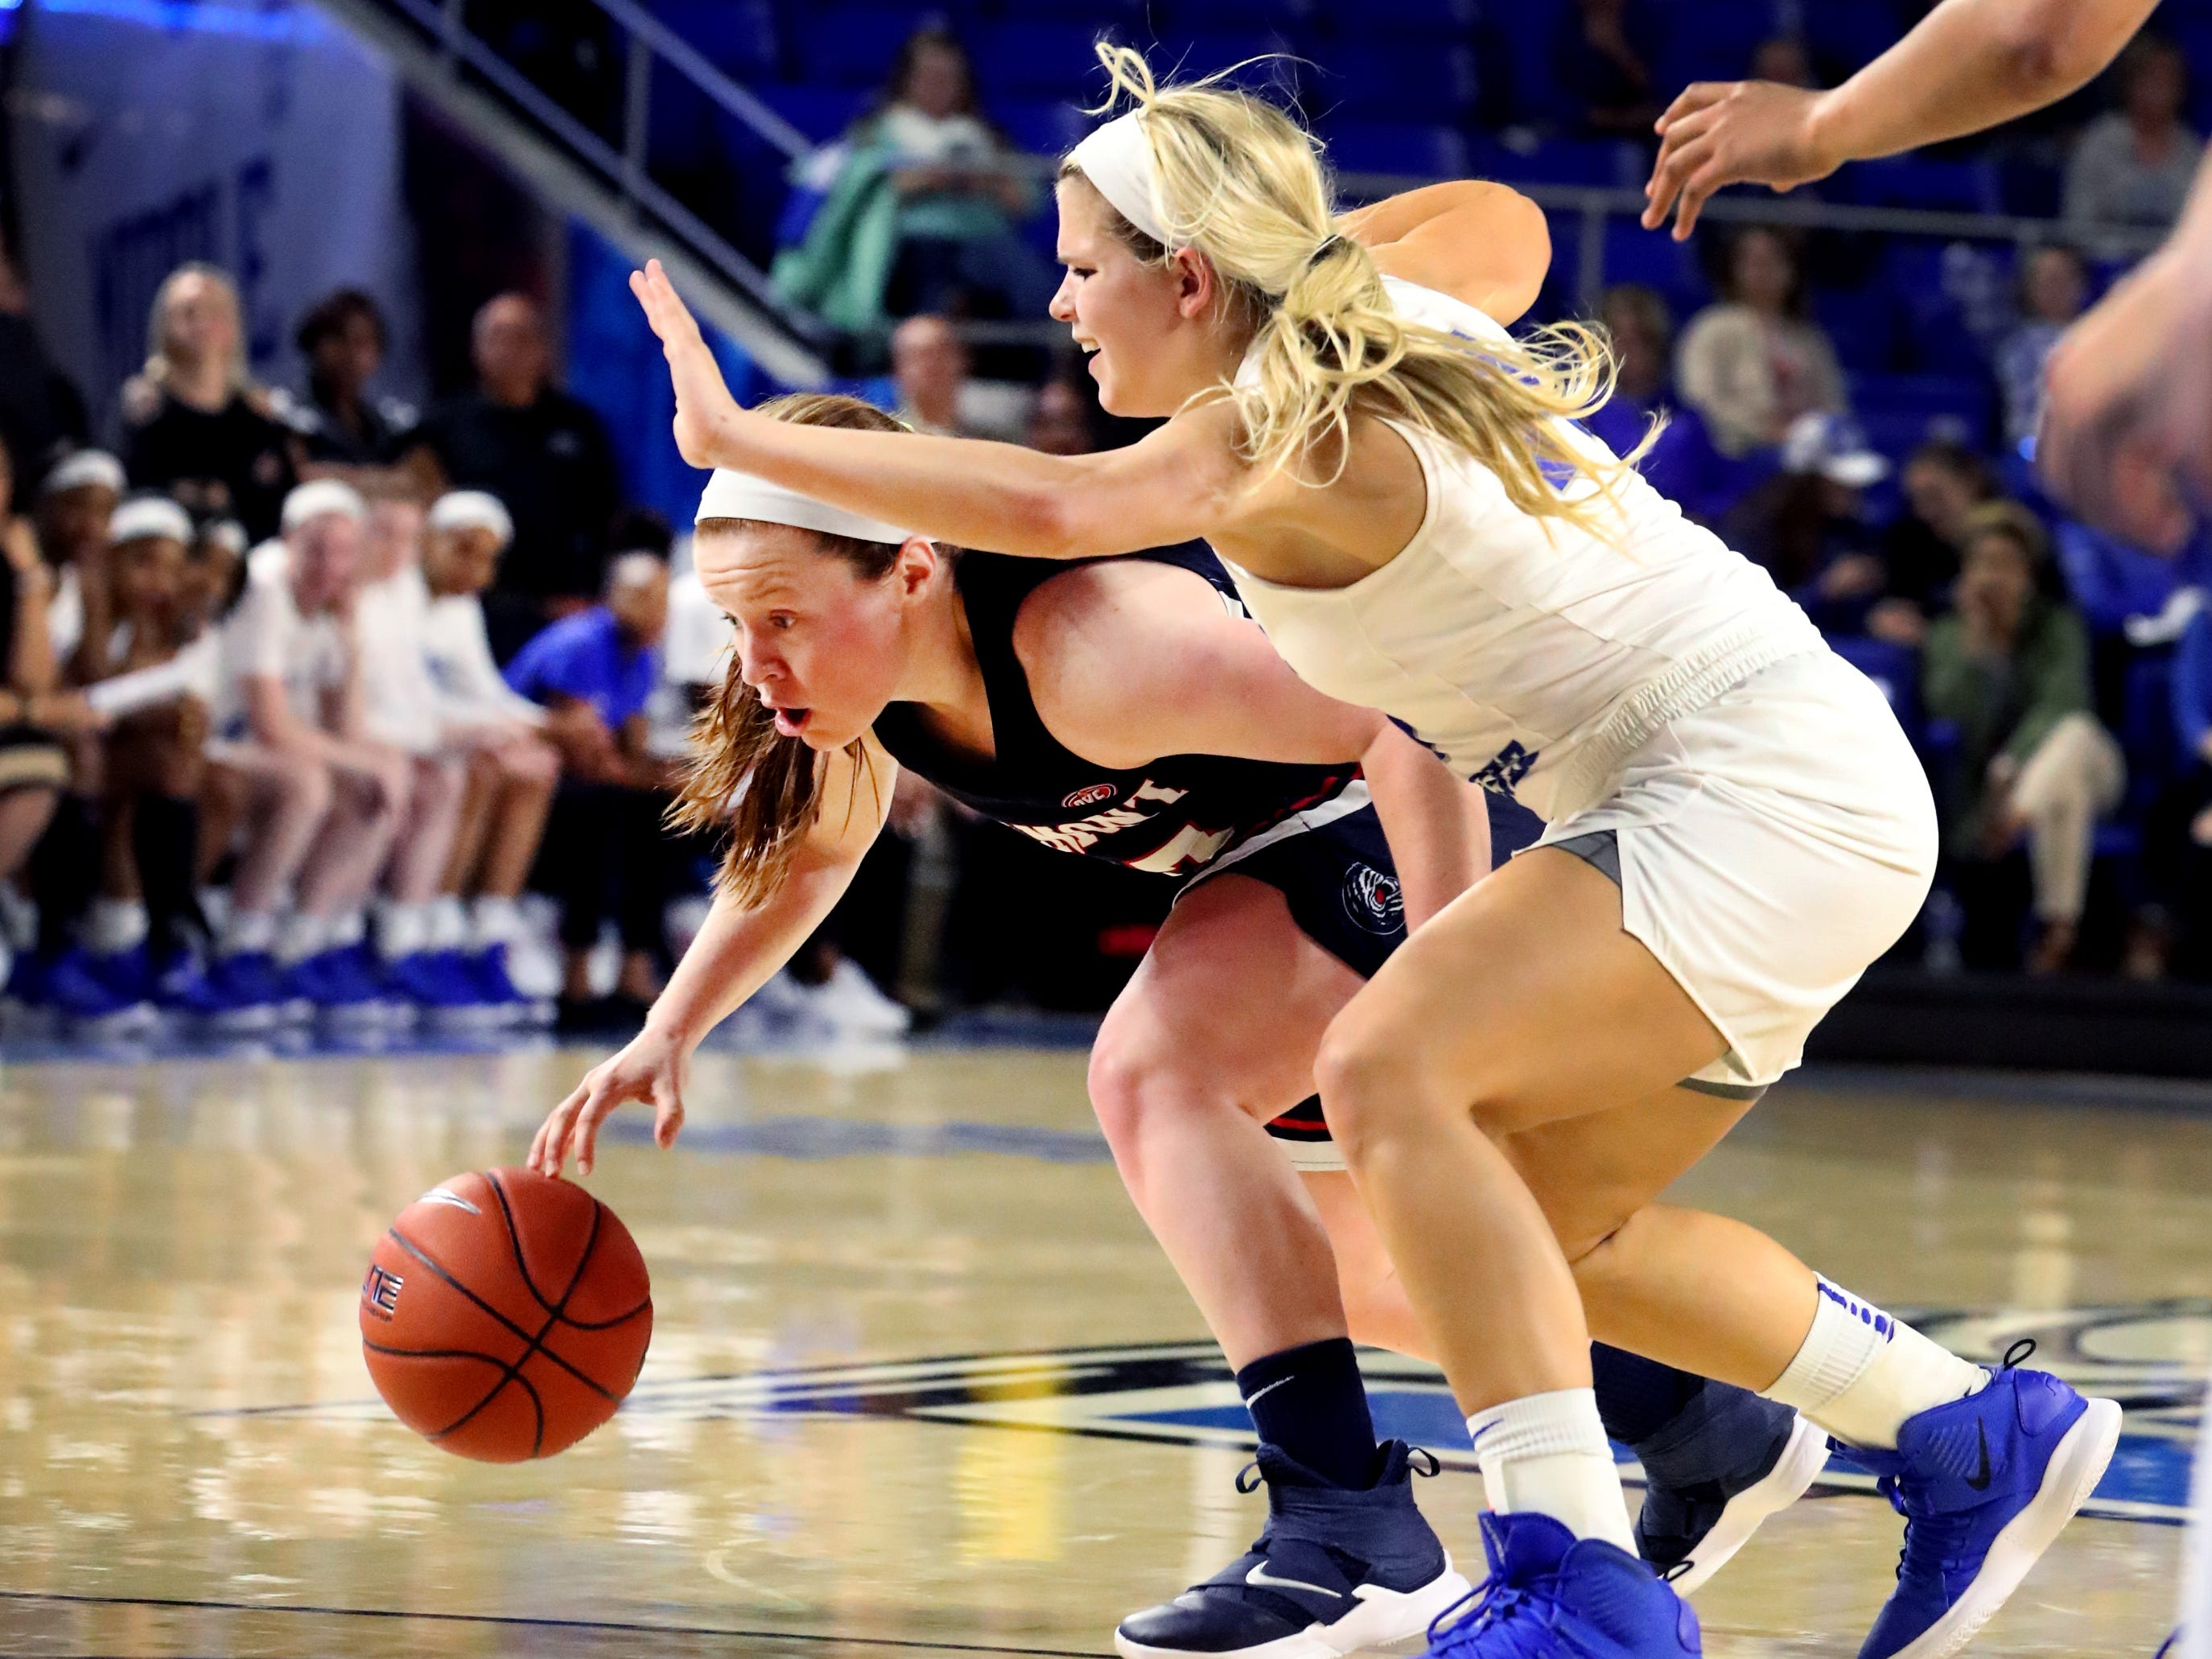 Belmont's Darby Maggard (33) tries to get the ball to the basket as MTSU's Katie Collier (14) guards her during the game at MTSU on Monday, Nov. 19, 2018.